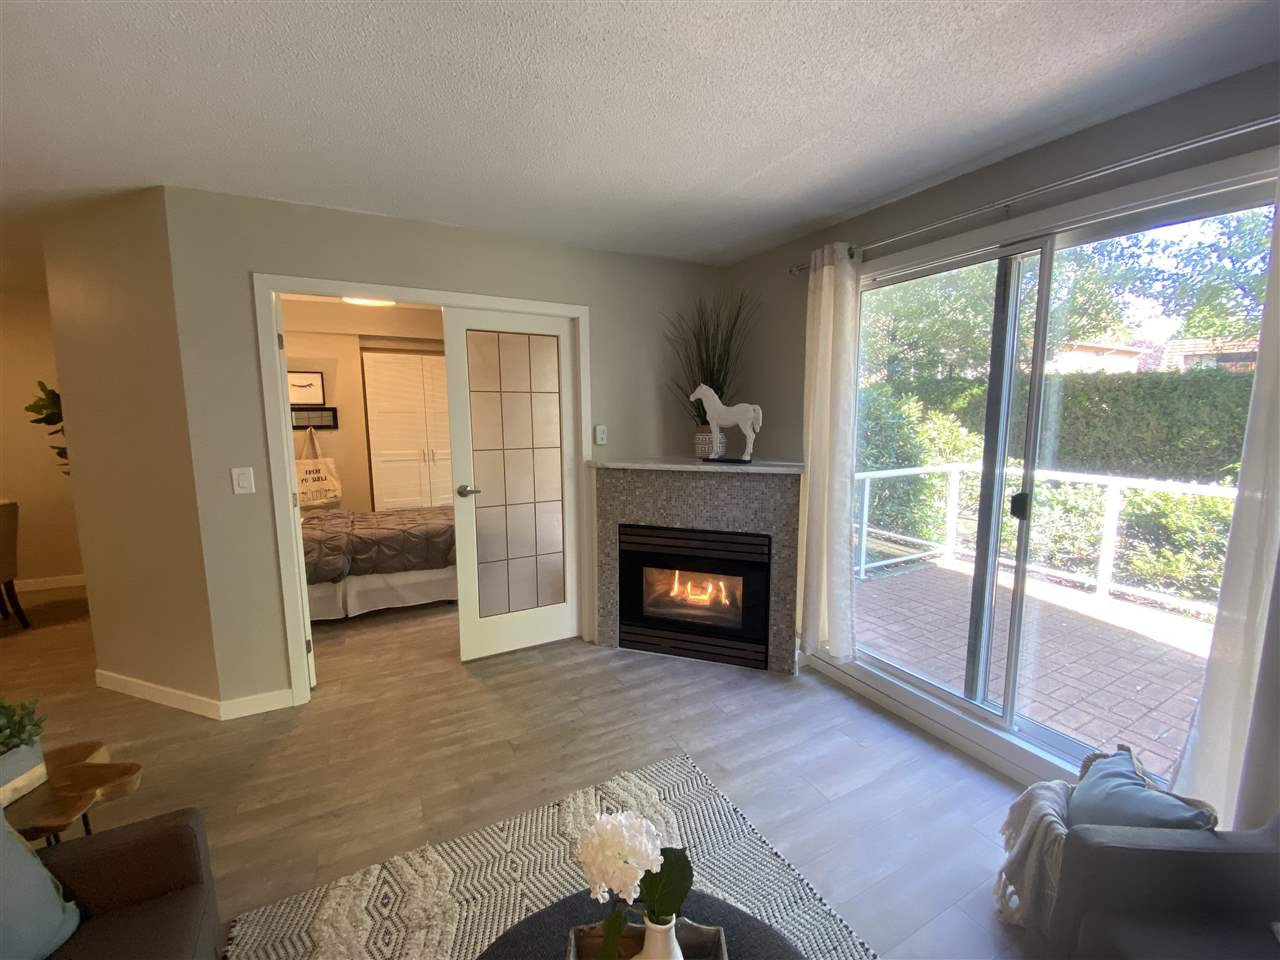 """Main Photo: 101 9830 WHALLEY Boulevard in Surrey: Whalley Condo for sale in """"KING GEORGE PARK TOWER"""" (North Surrey)  : MLS®# R2476975"""